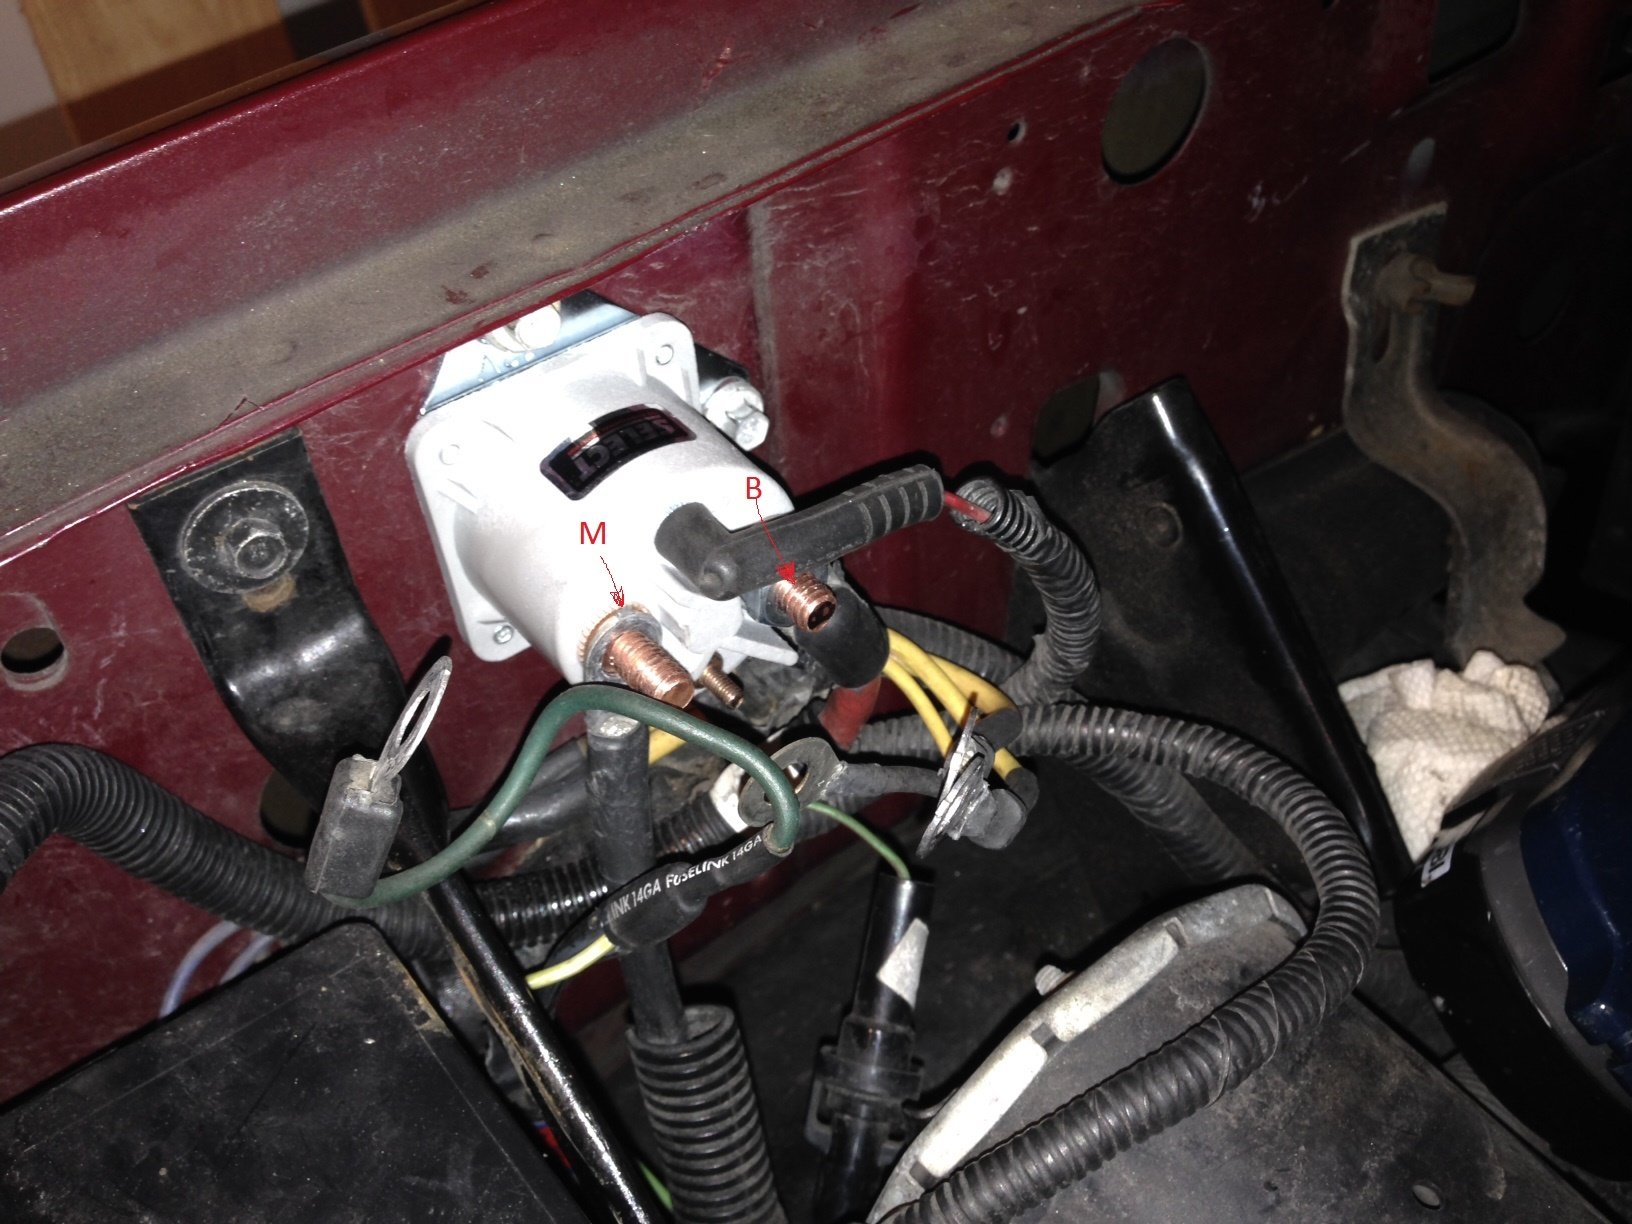 Ford 8n Starter Solenoid Wiring Diagram 39 Images Convetson For 9n Tractor 2n Readingrat Net 434047d1464917417 No Signs Battery Power After Changing Solenoidresize665